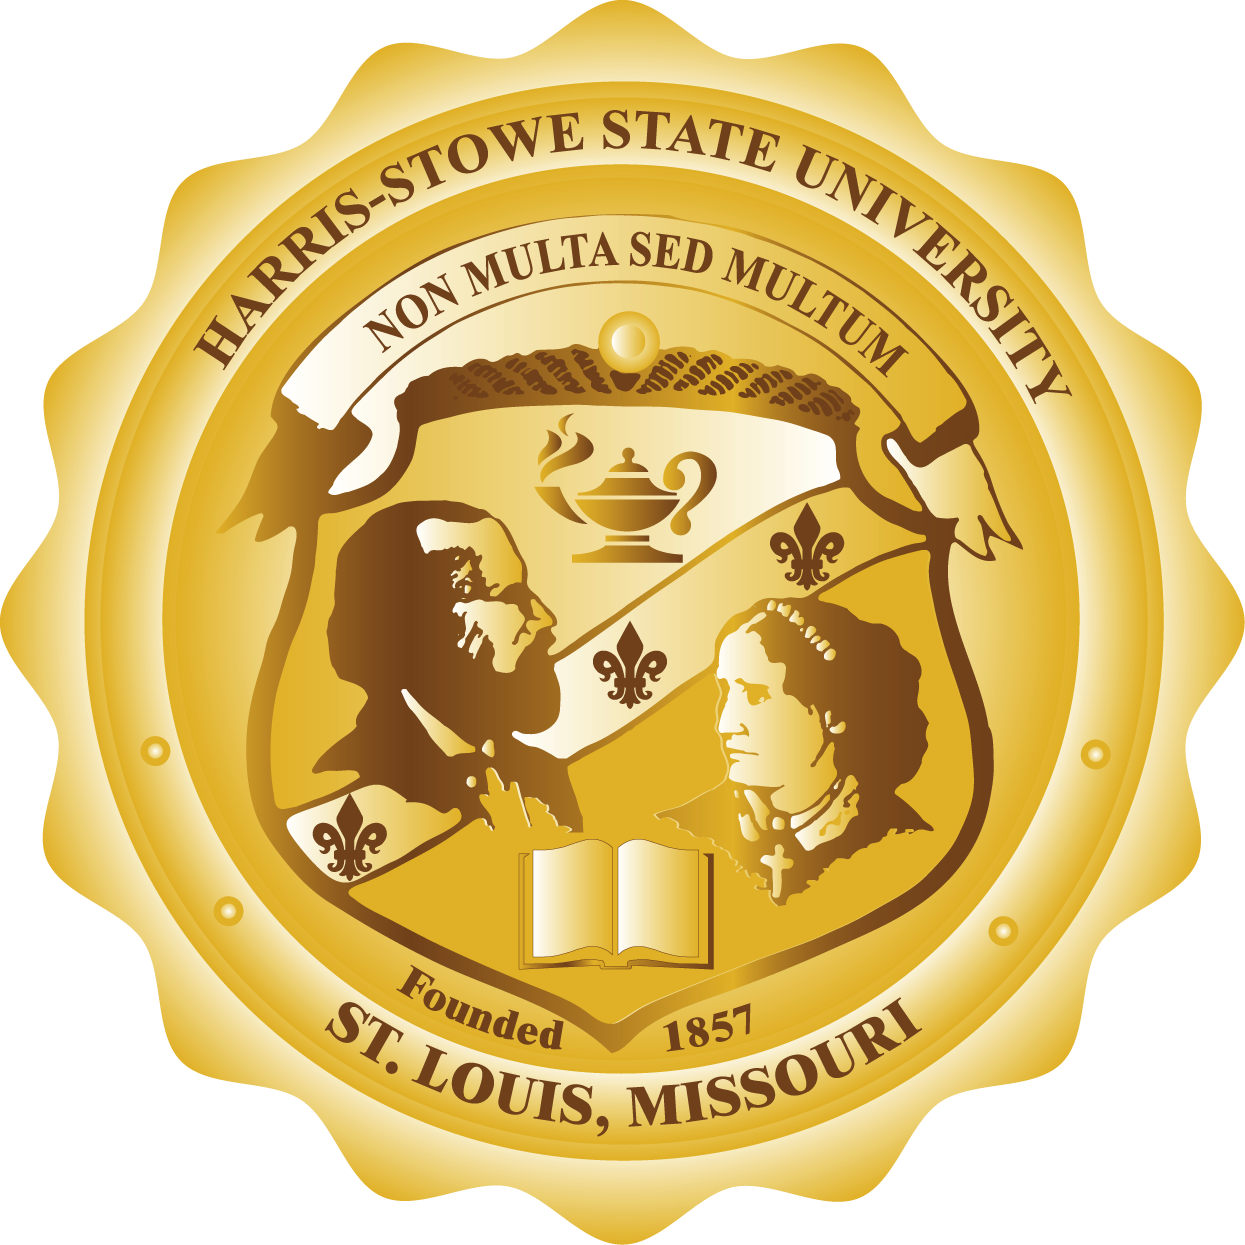 Gold badge png : Harris stowe state university: the office of institutional advancement